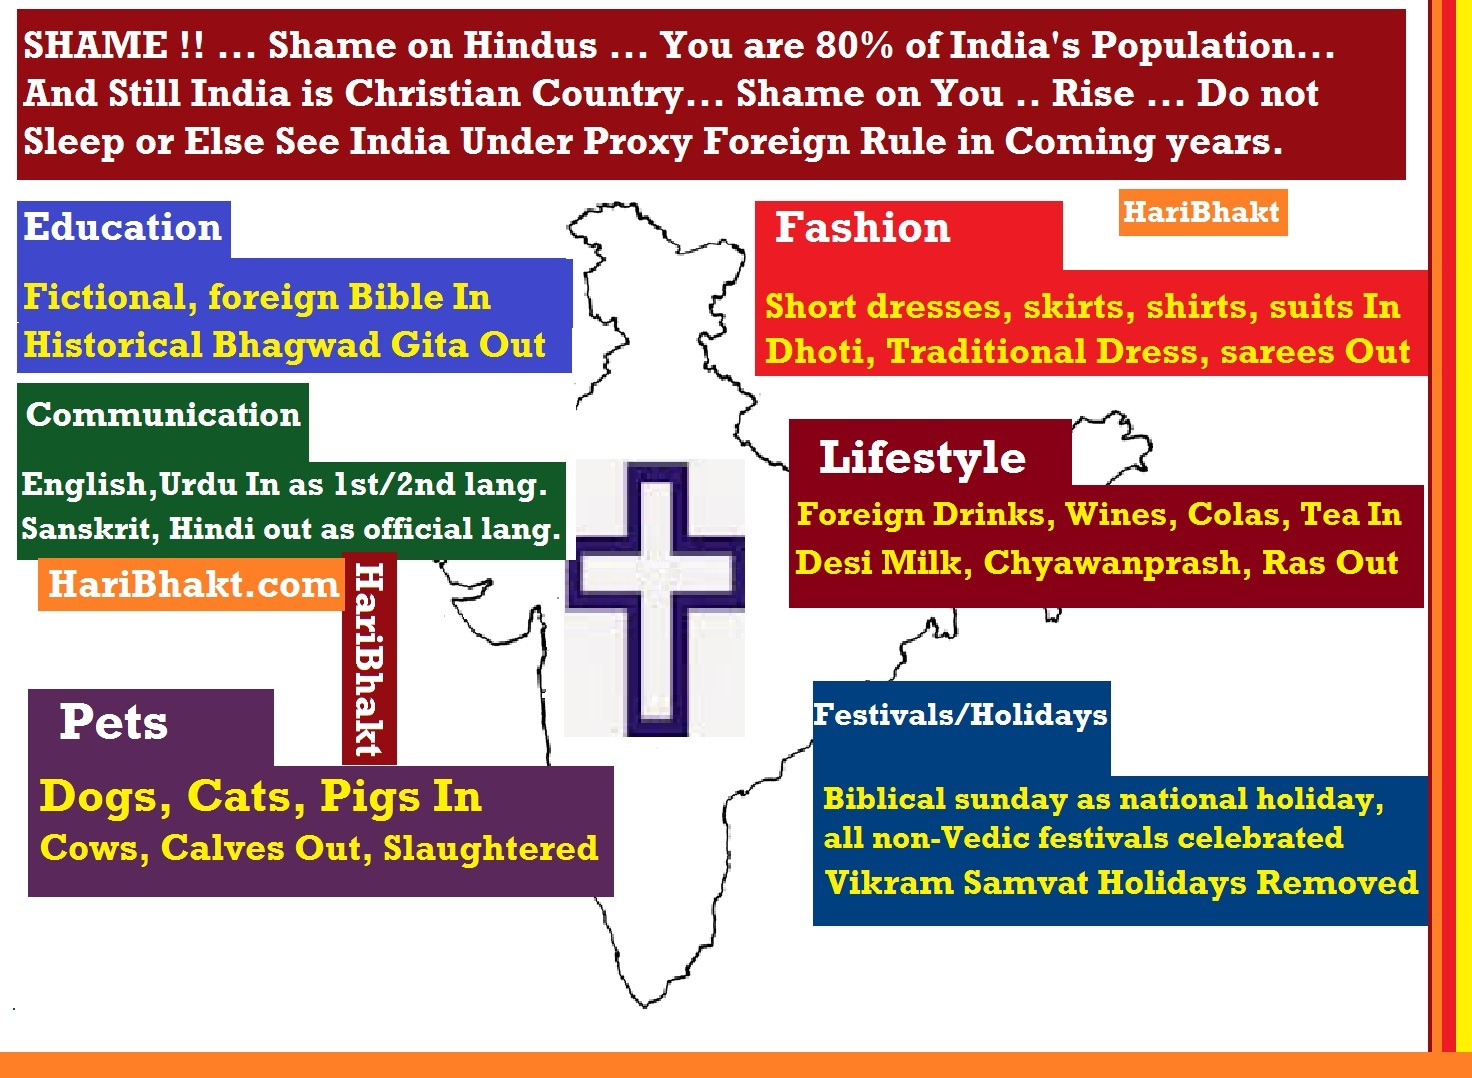 India is Christian Country - Education, Lifestyle, Daily Routines, Festivals, Communication, Fashion and Pets Everything is Catholicized. Time to Make Bharat Hindu Rashtra.